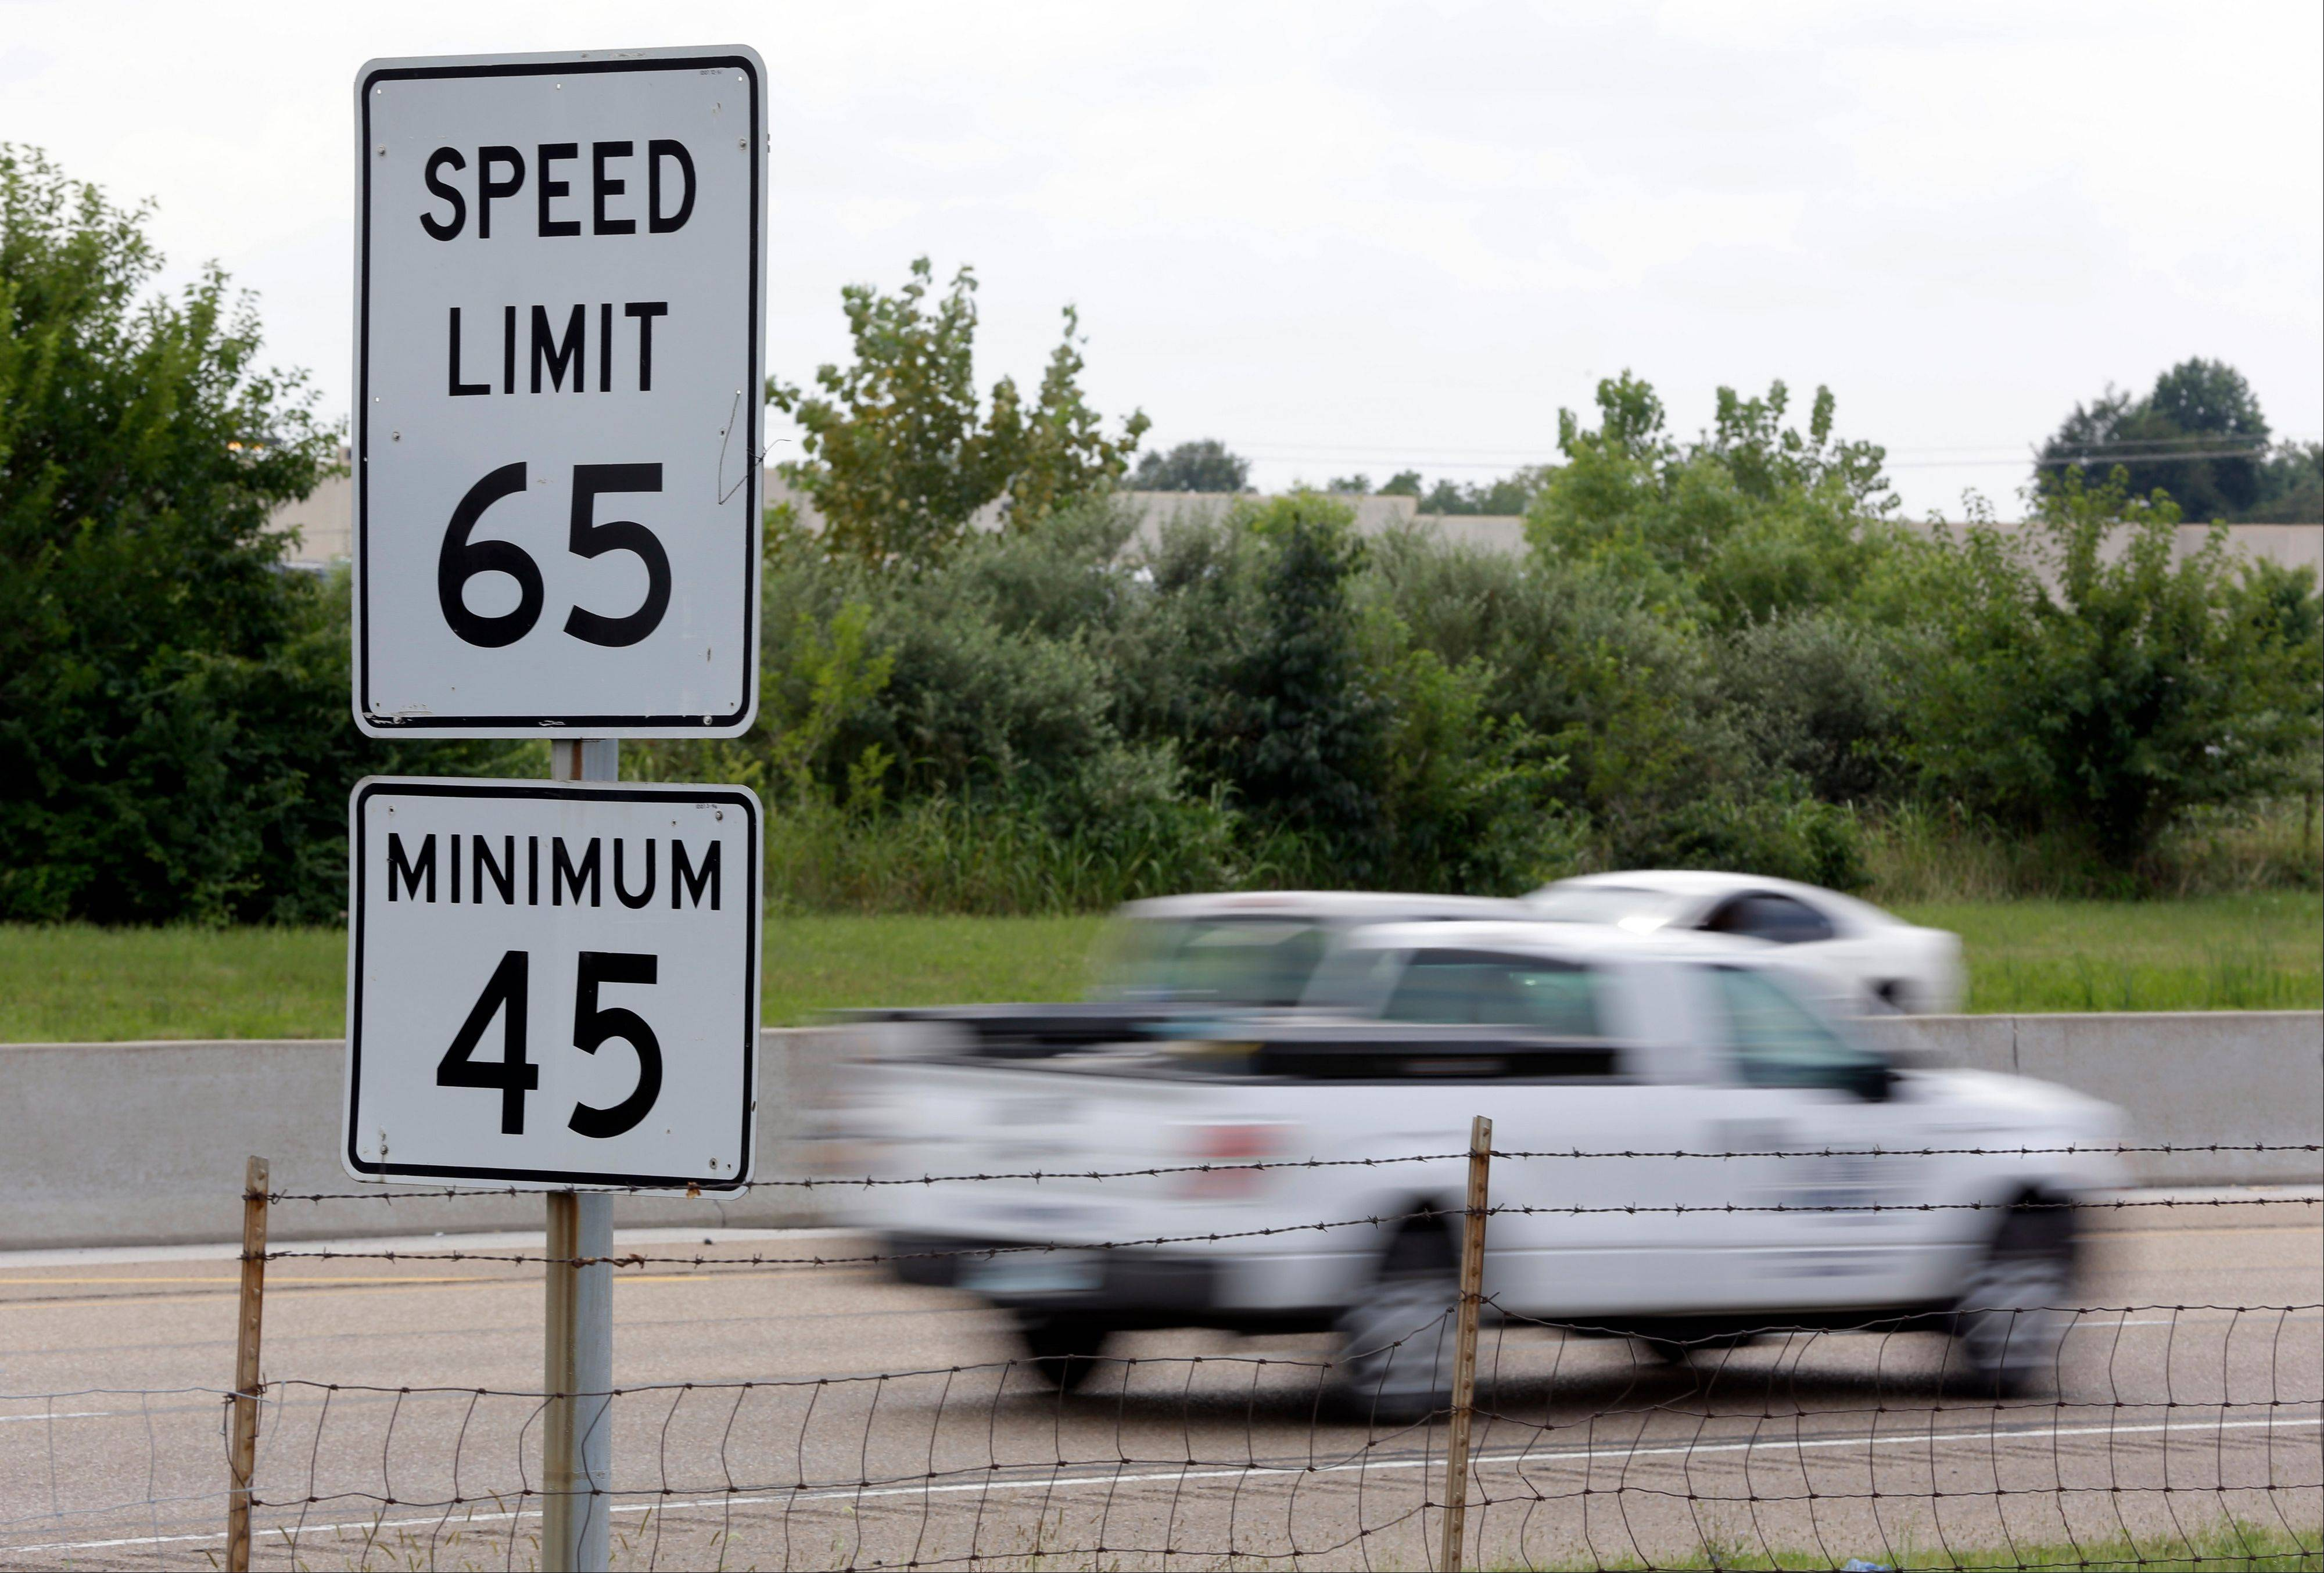 ASSOCIATED PRESS Vehicles pass a speed limit sign along Interstate 64 in O�Fallon, Ill. Gov. Pat Quinn has until Monday to sign or veto legislation that would raise the speed limit on rural interstates in Illinois from 65 mph to 70 mph starting in January.